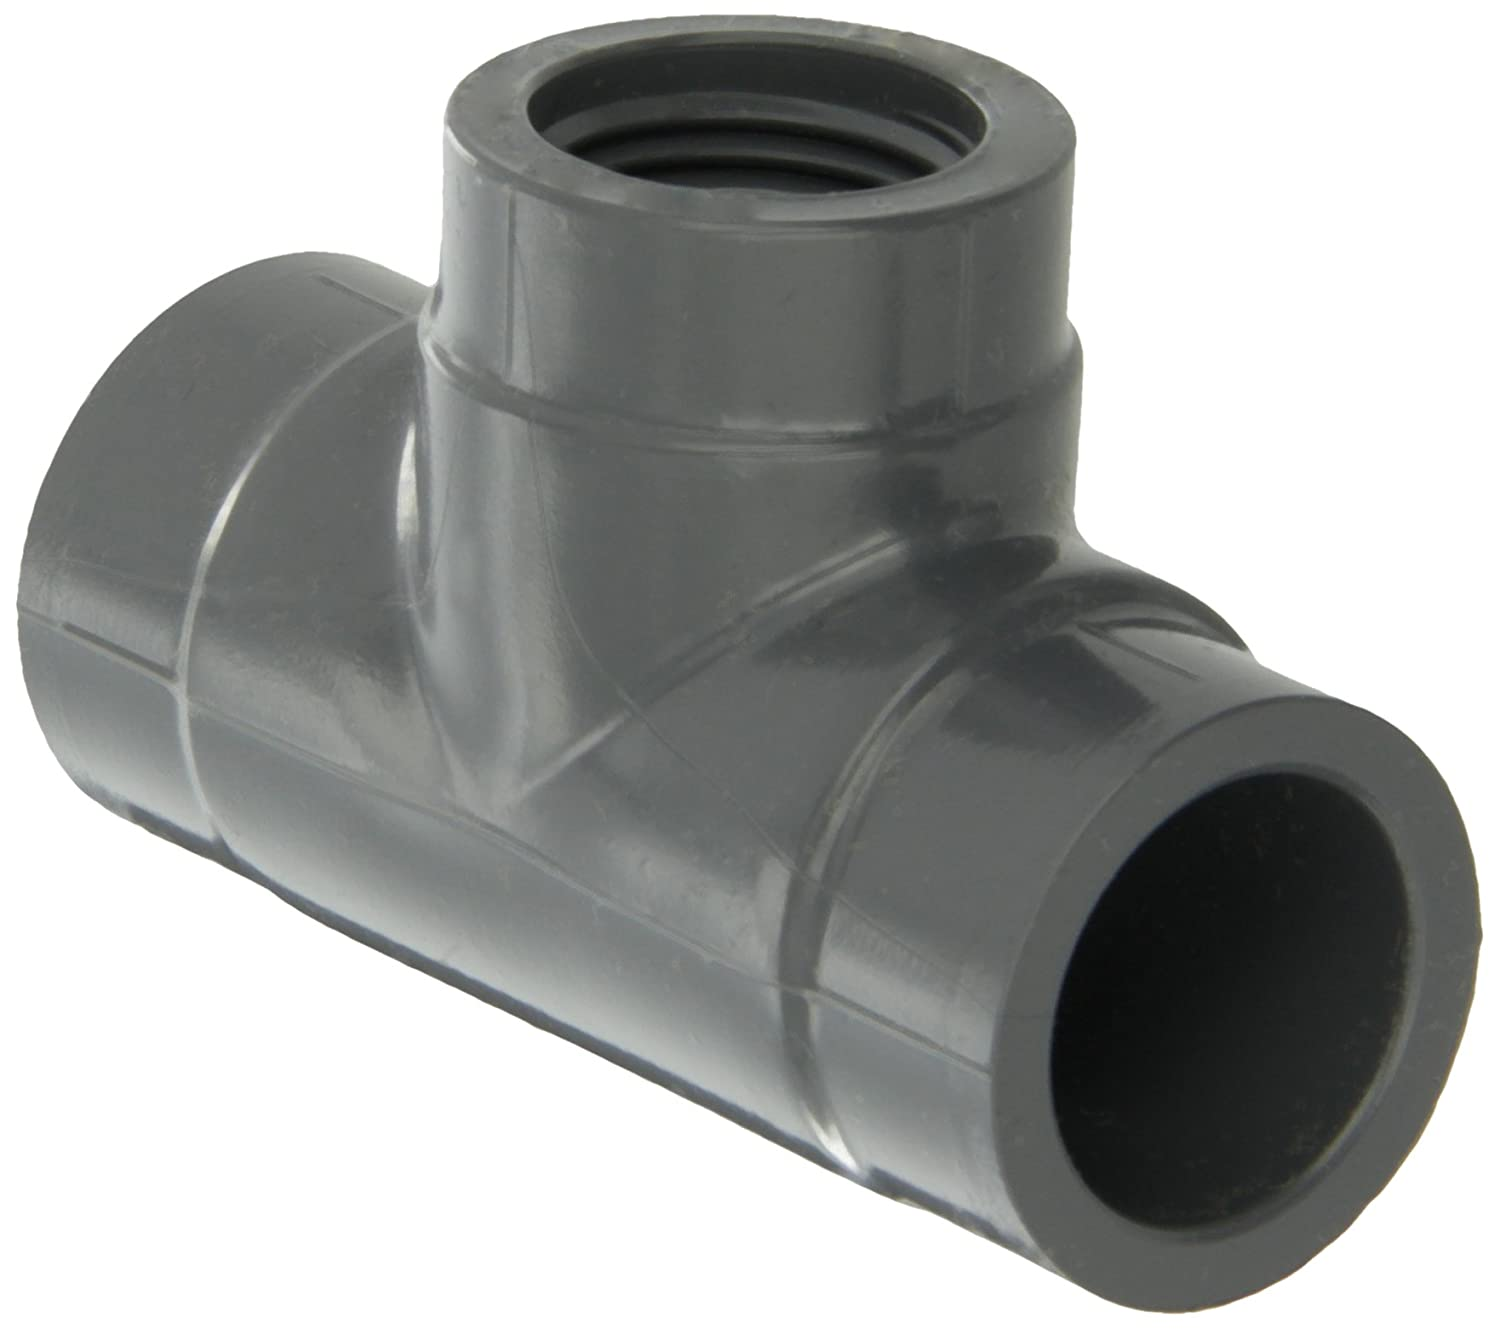 Schedule 80 Tee Gray 1//2 NPT Female x Socket x Socket 1//2 NPT Female x Socket x Socket GF Piping Systems PVC Pipe Fitting